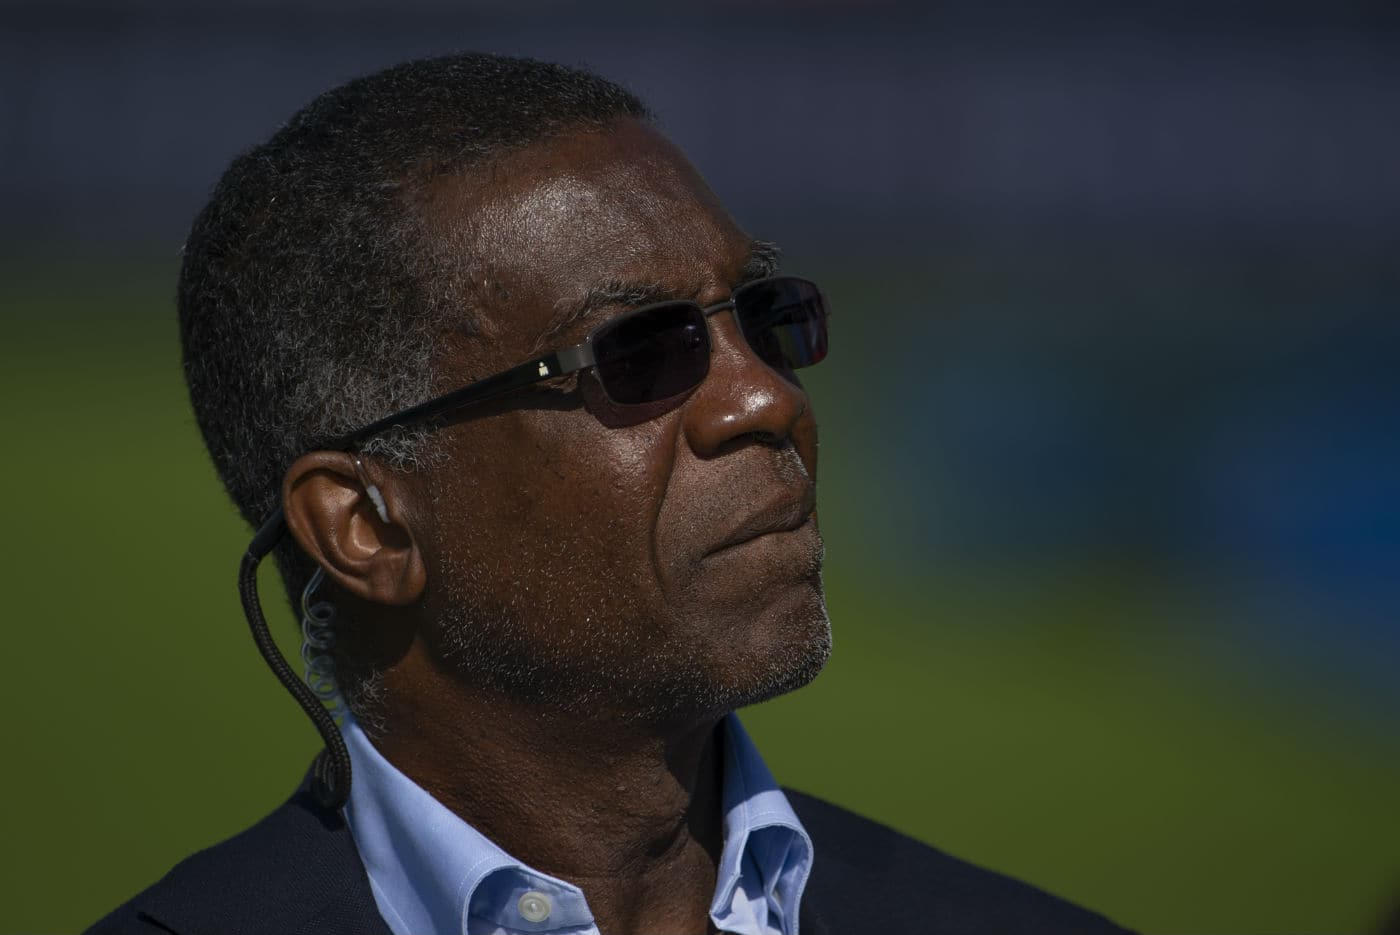 If there is no T20 World Cup, BCCI has the right to do IPL, says Michael Holding